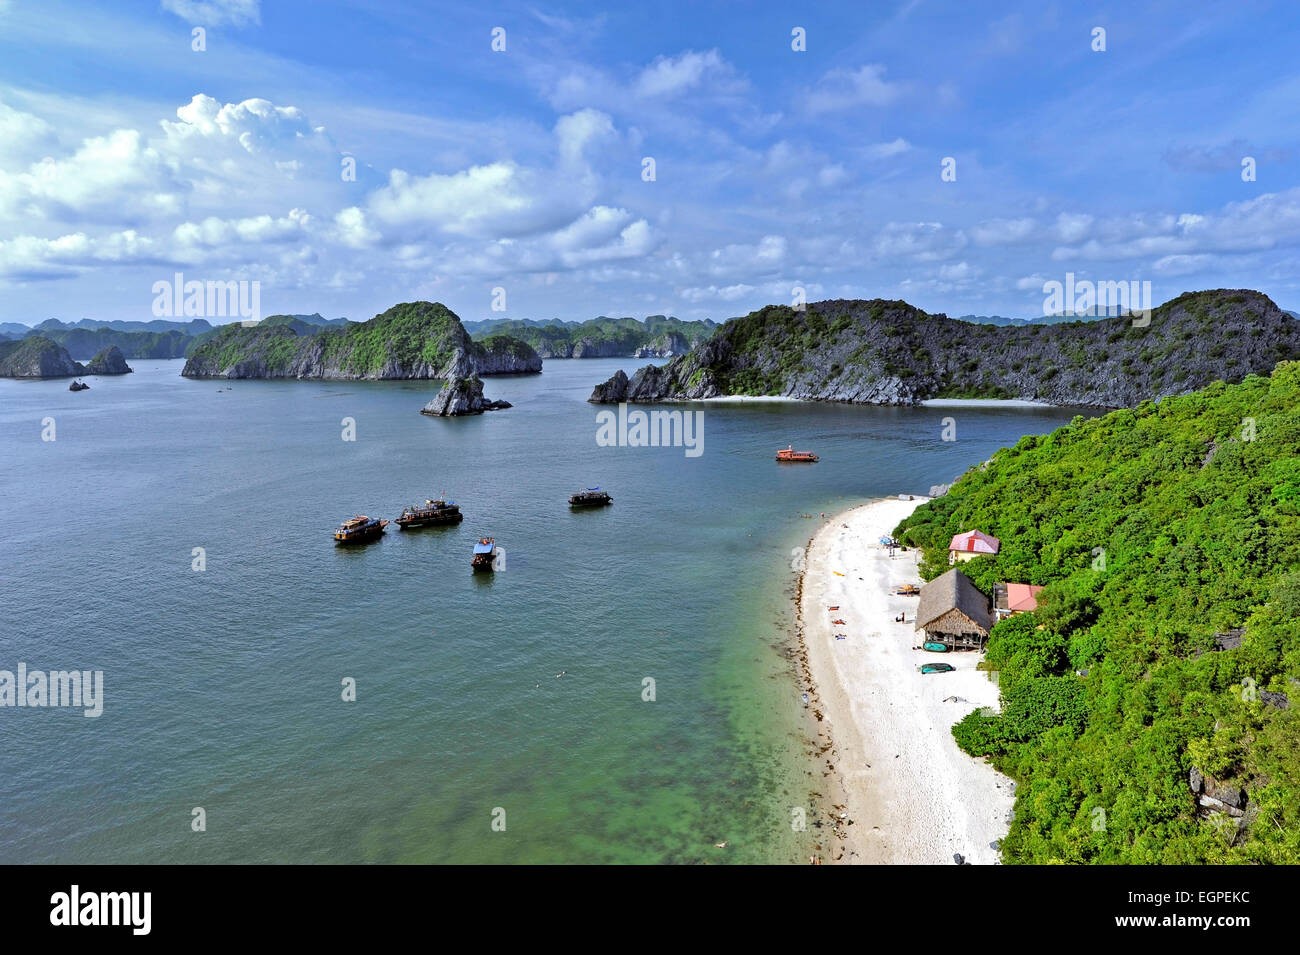 Vietnam - Halong Bay National Park (UNESCO). The most popular place in Vietnam. Monkey island. - Stock Image